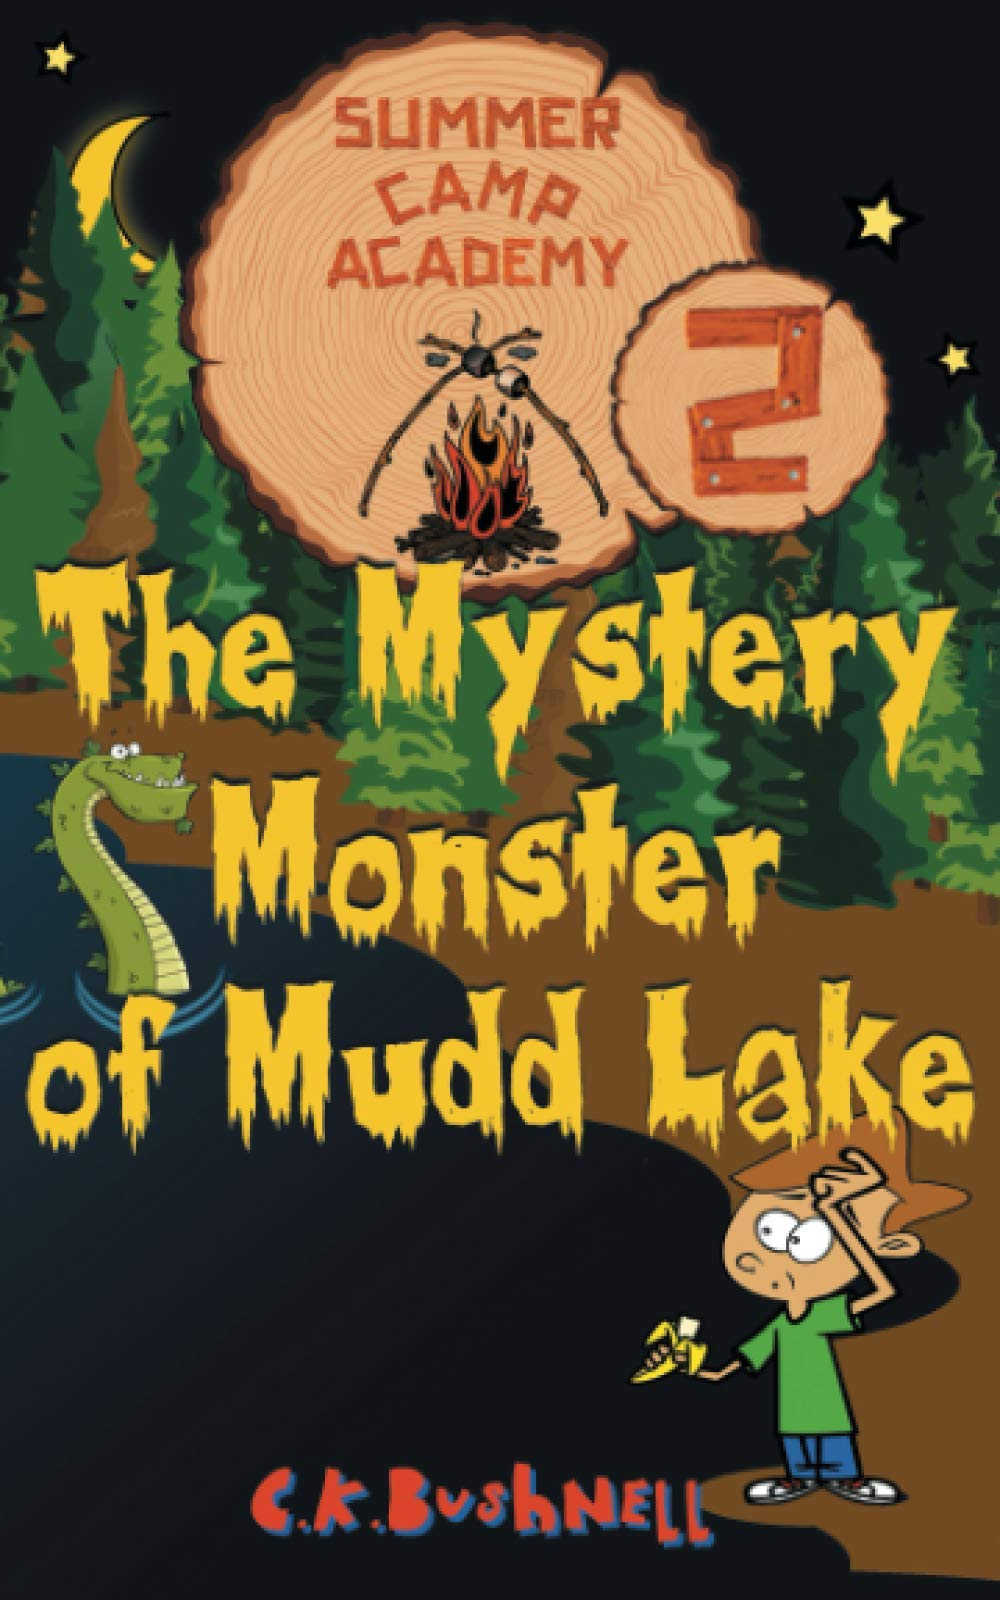 Summer Camp Academy: The Mystery Monster of Mudd Lake